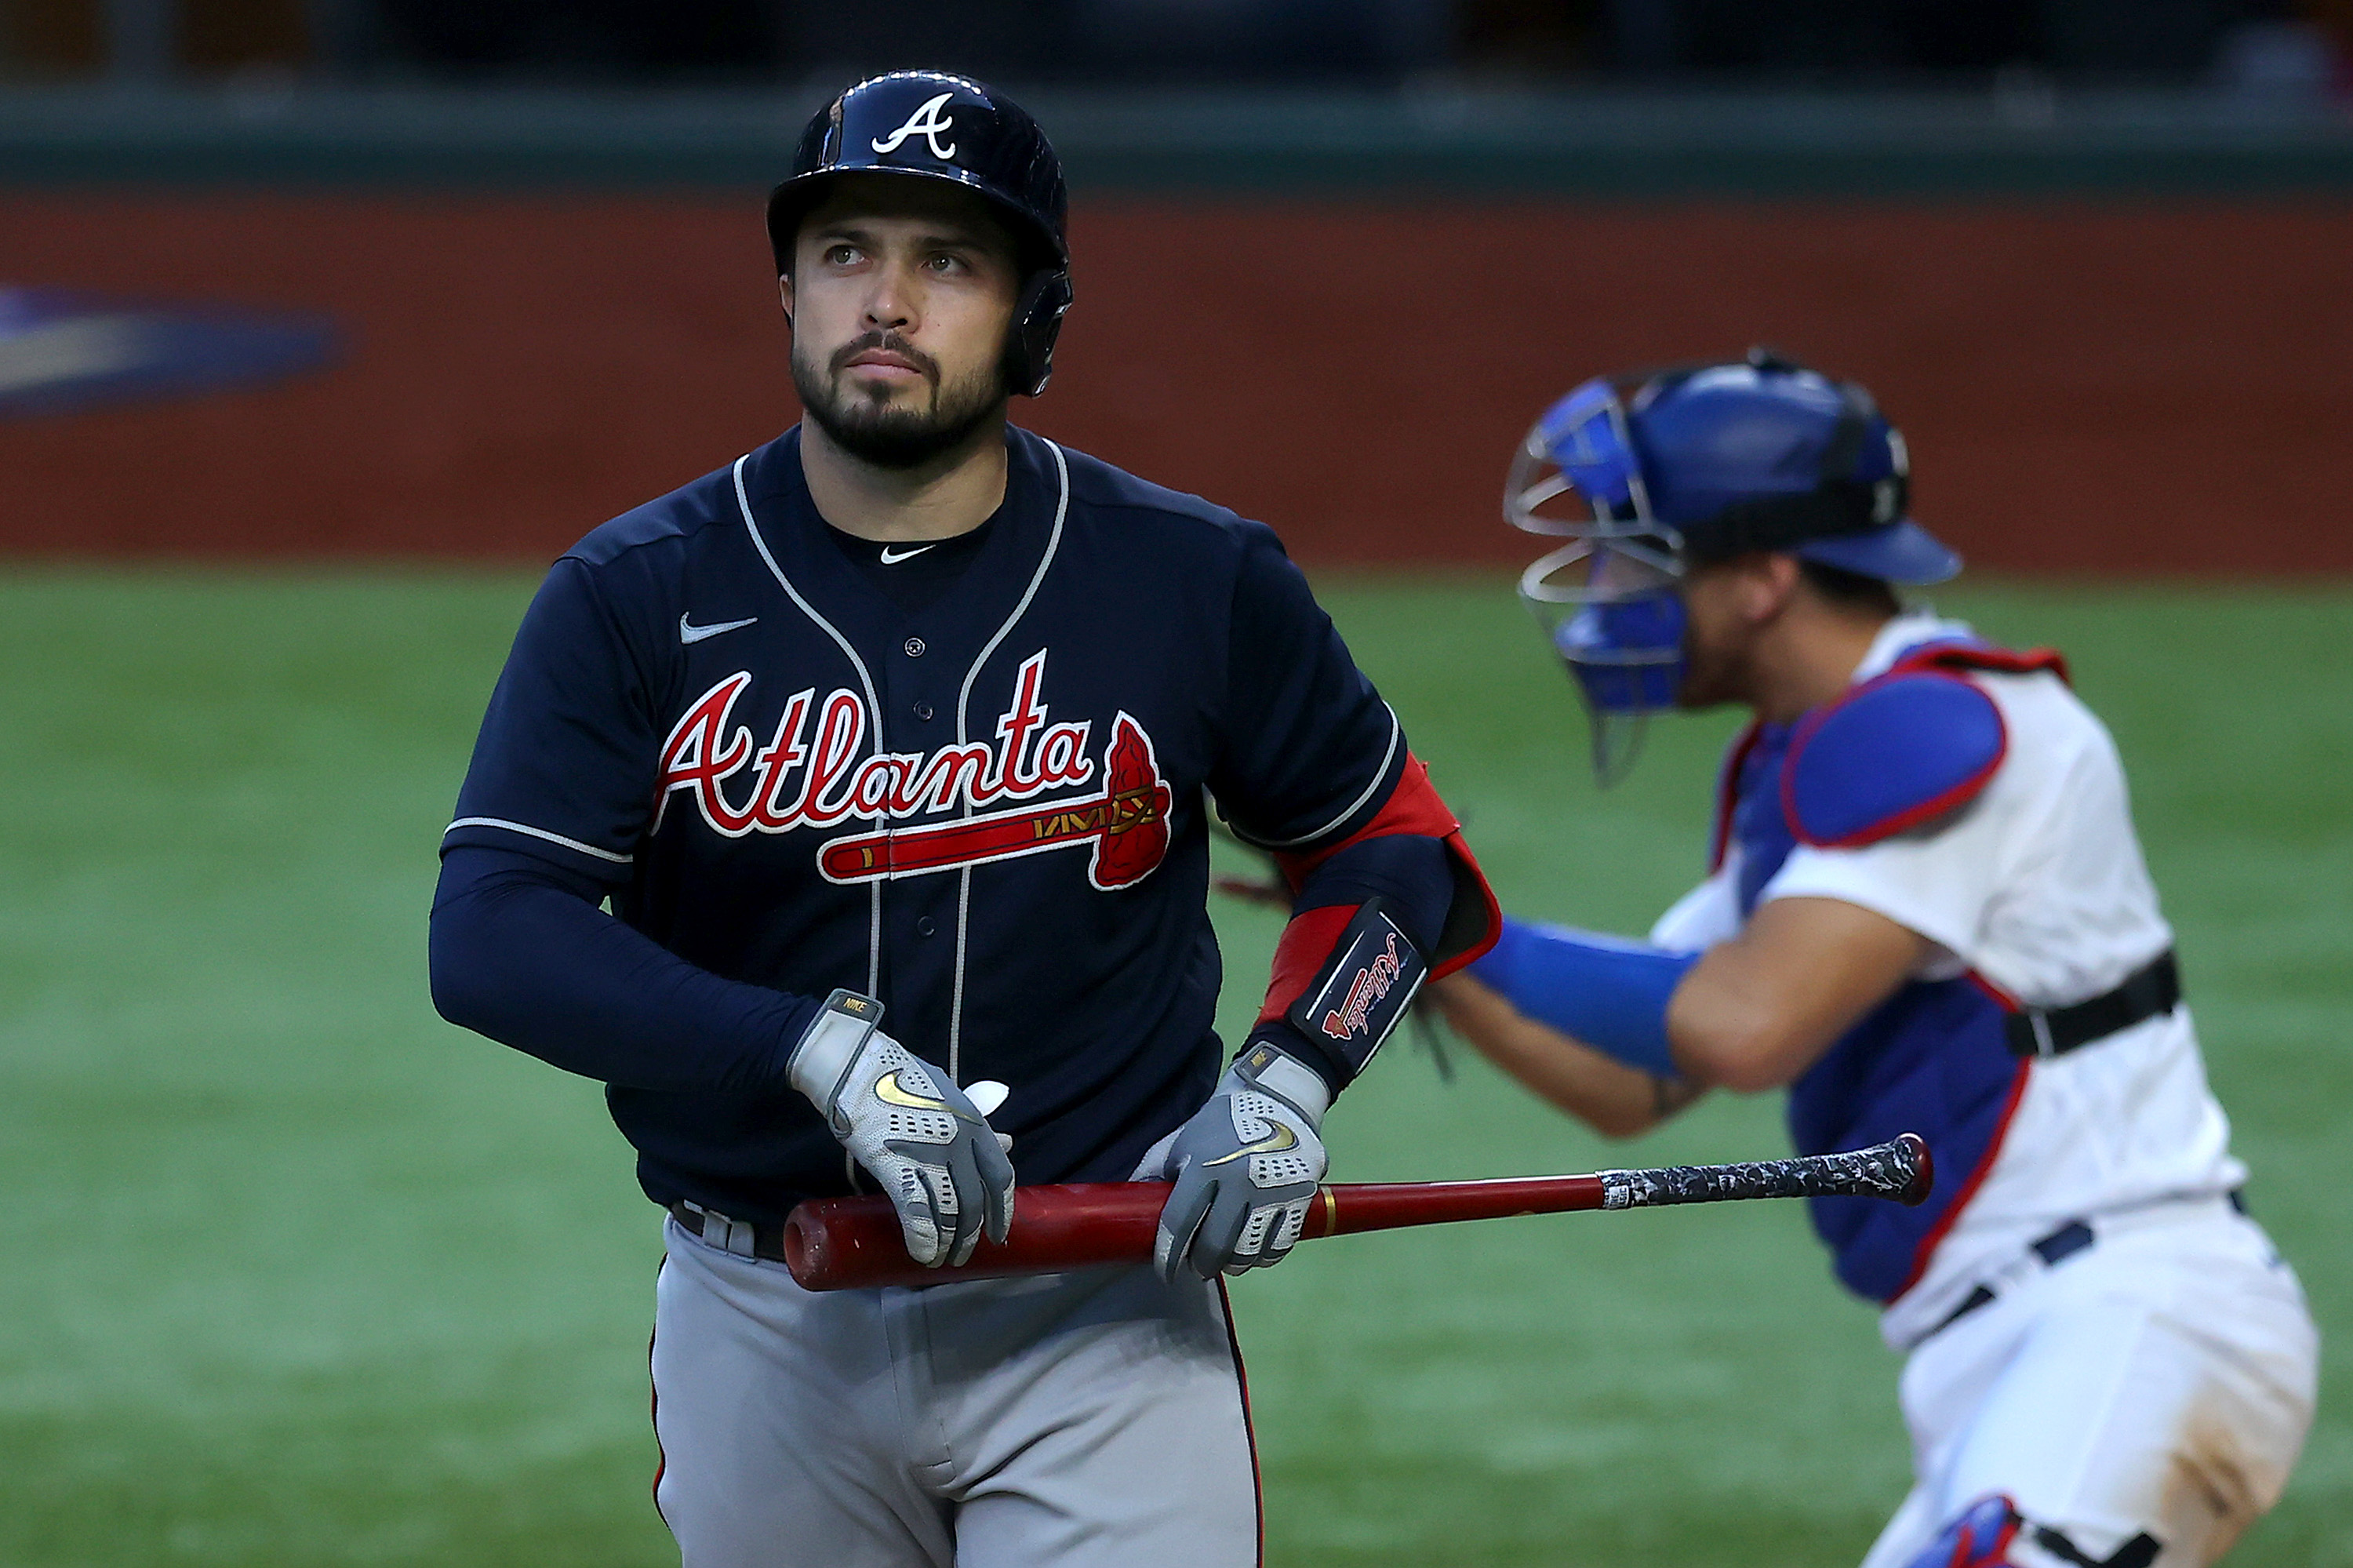 Travis d'Arnaud #16 of the Atlanta Braves reacts after striking out against the Los Angeles Dodgers during the eighth inning in Game Six of the National League Championship Series at Globe Life Field on October 17, 2020 in Arlington, Texas.